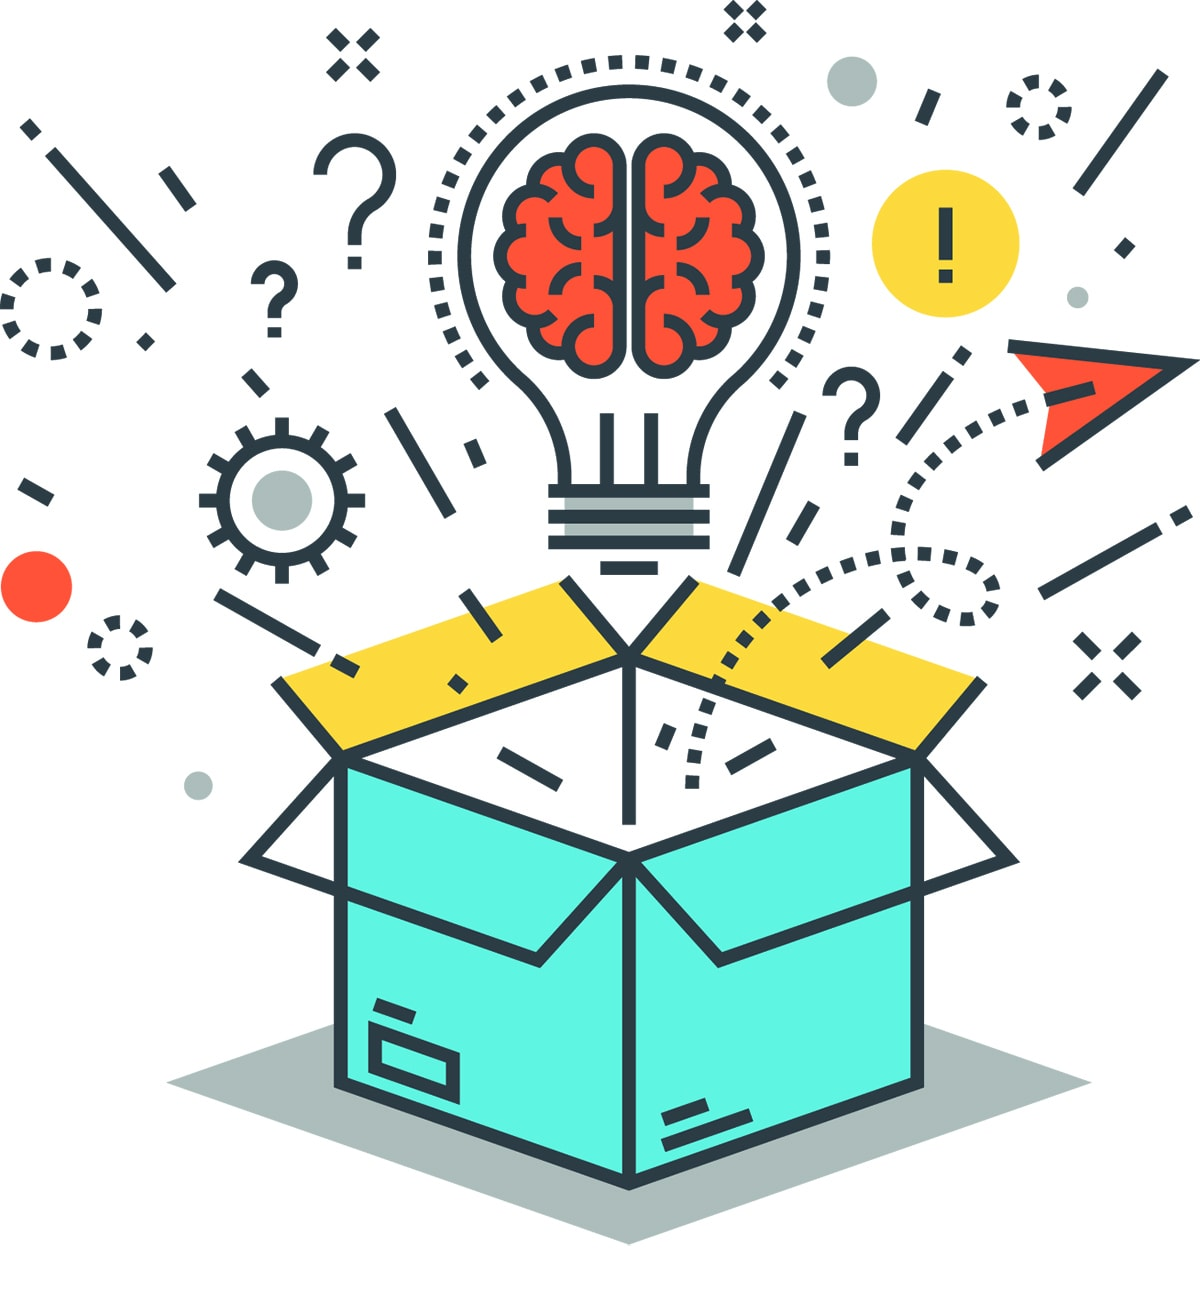 whimsical illustration of a lightbulb with a brain in it popping out of a box